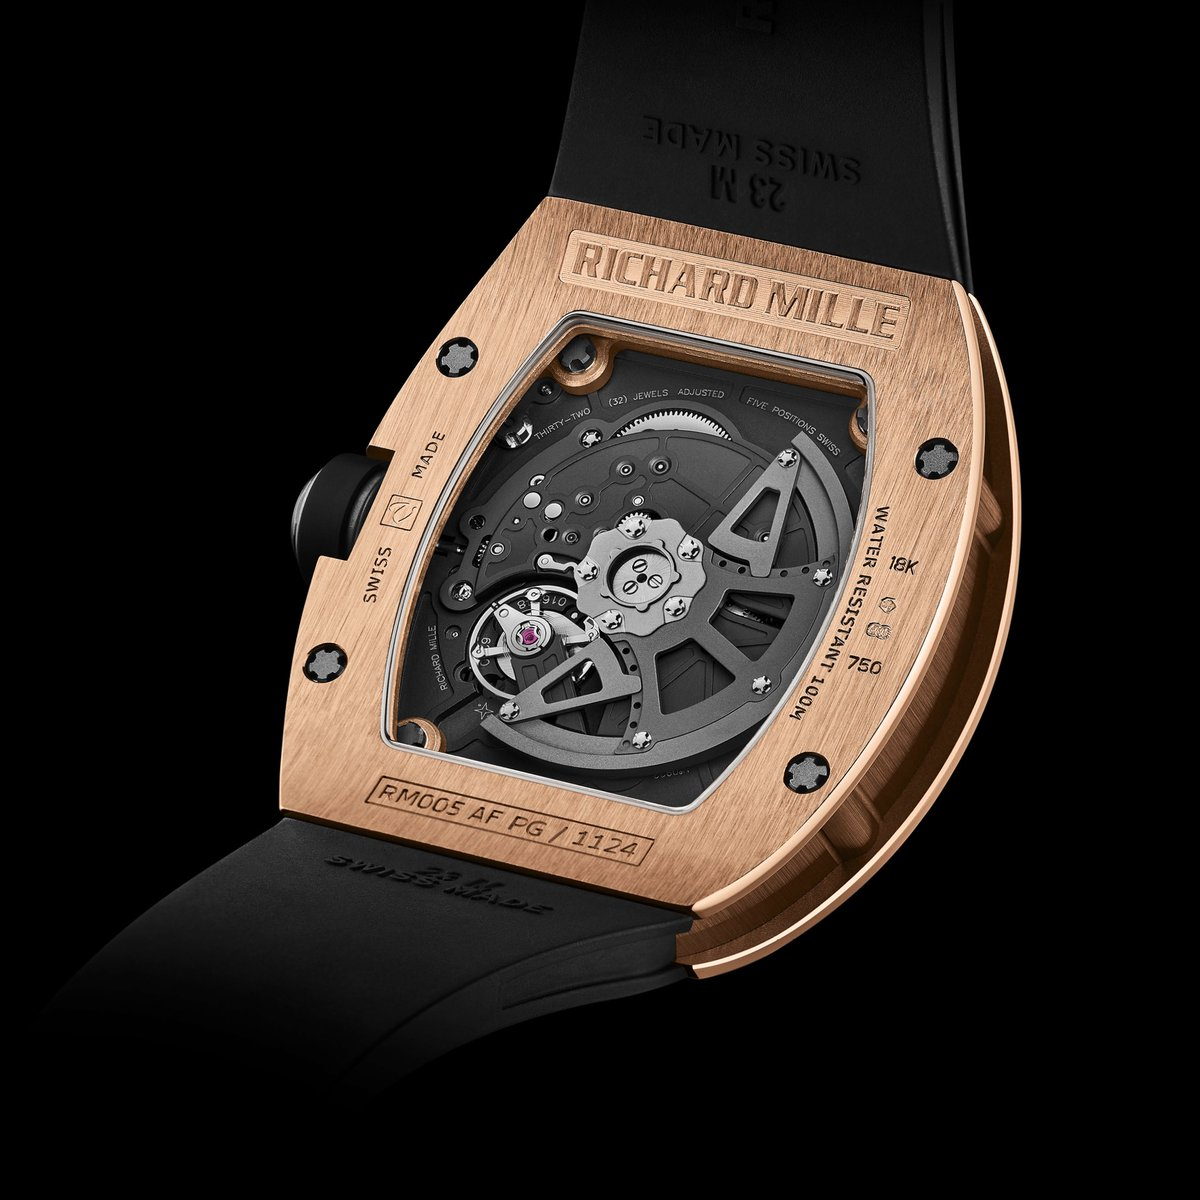 #Historicalmodels The RM 005 introduced the first variable-geometry rotor which adapted the rewinding mechanism to the user's activity level. A Symbol of ingenious innovations specific to the brand and its obsession of constant development. #RichardMille https://t.co/Nm4c2IteQV